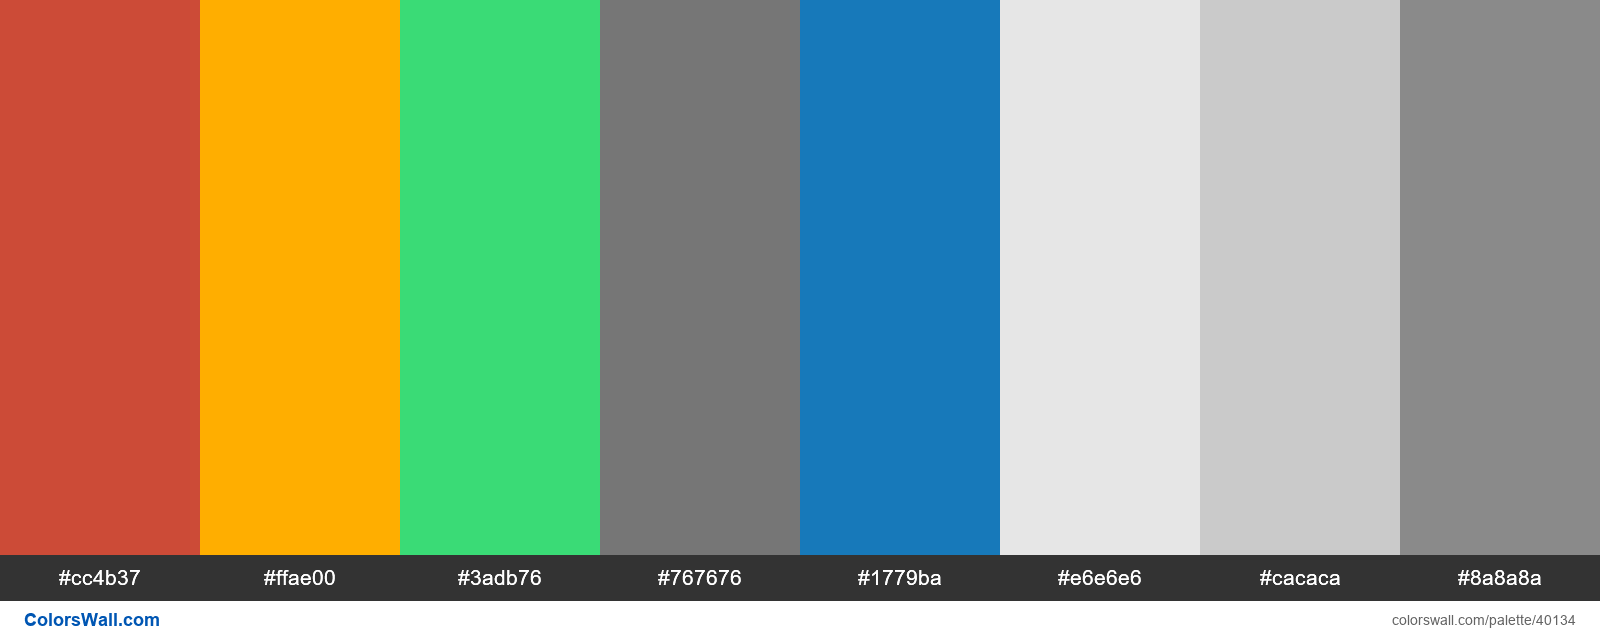 CSS Framework Foundation 6 colors - #40134